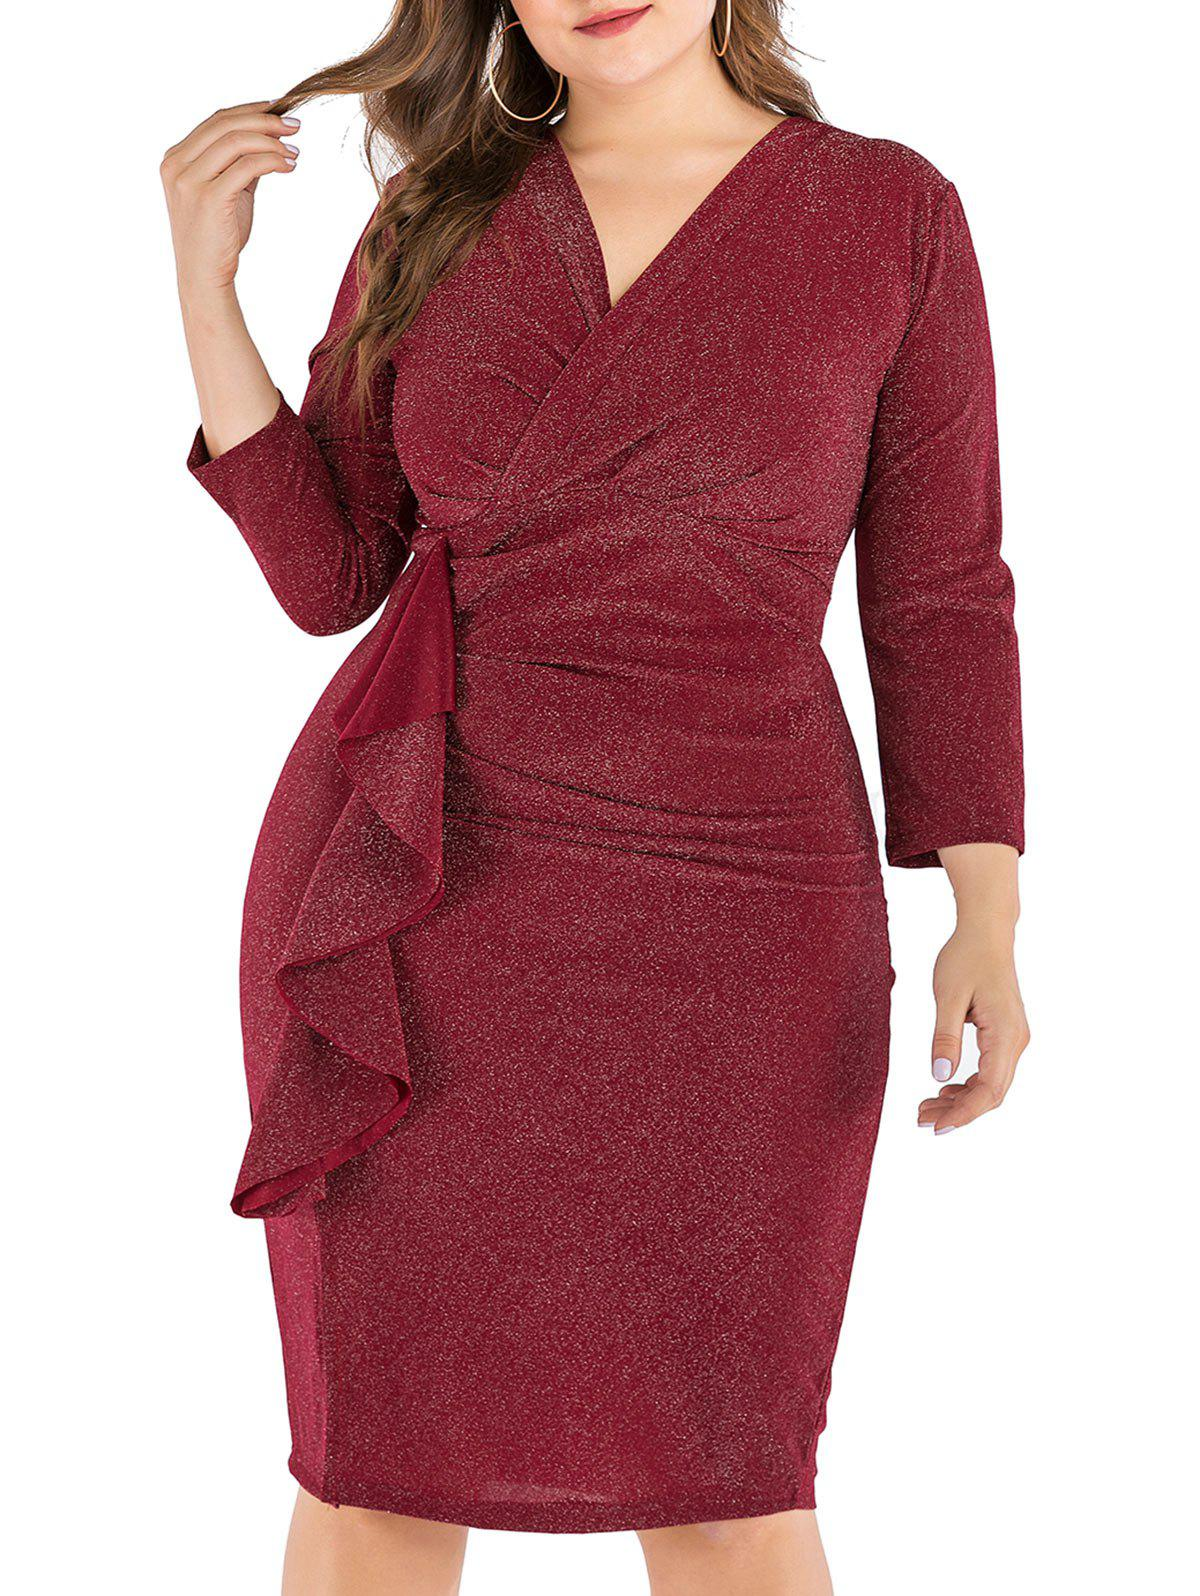 Sparkly métallique Volants Slit Plus Size Surplice Robe Rouge Vineux 5X